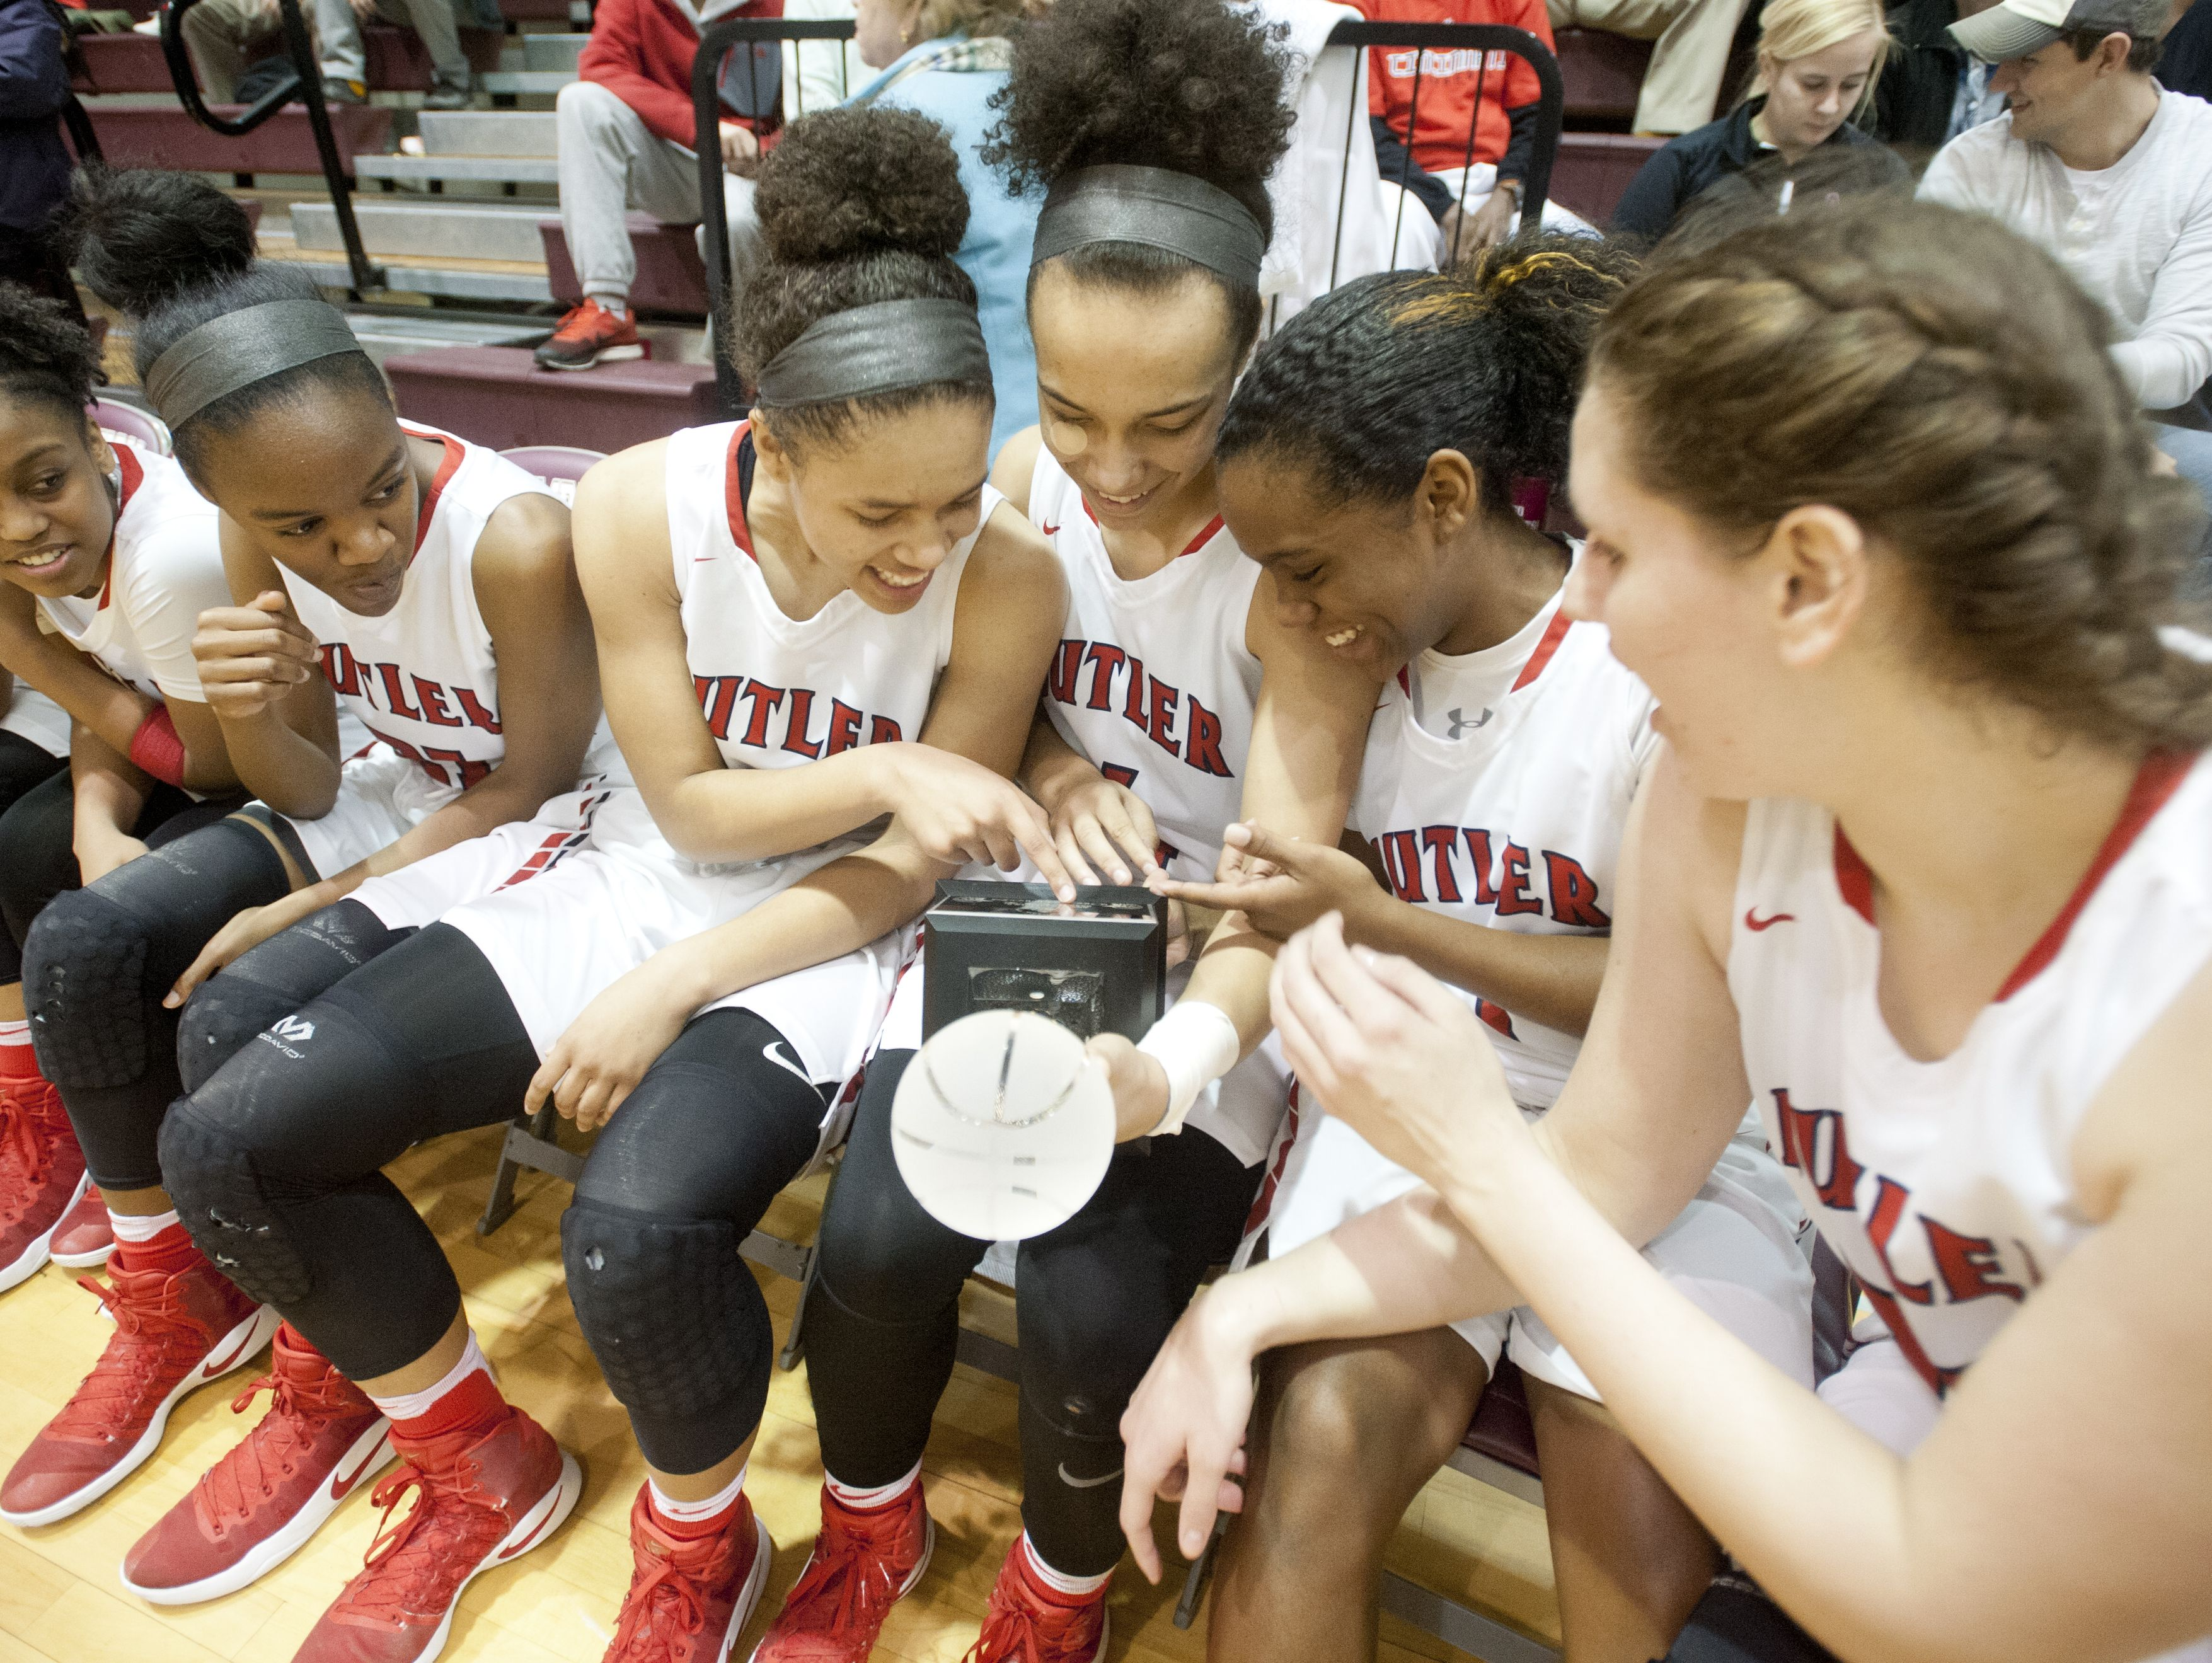 Butler celebrates their 2017 Girls' LIT championship trophy after defeating Male, 85-57. 28 January 2017